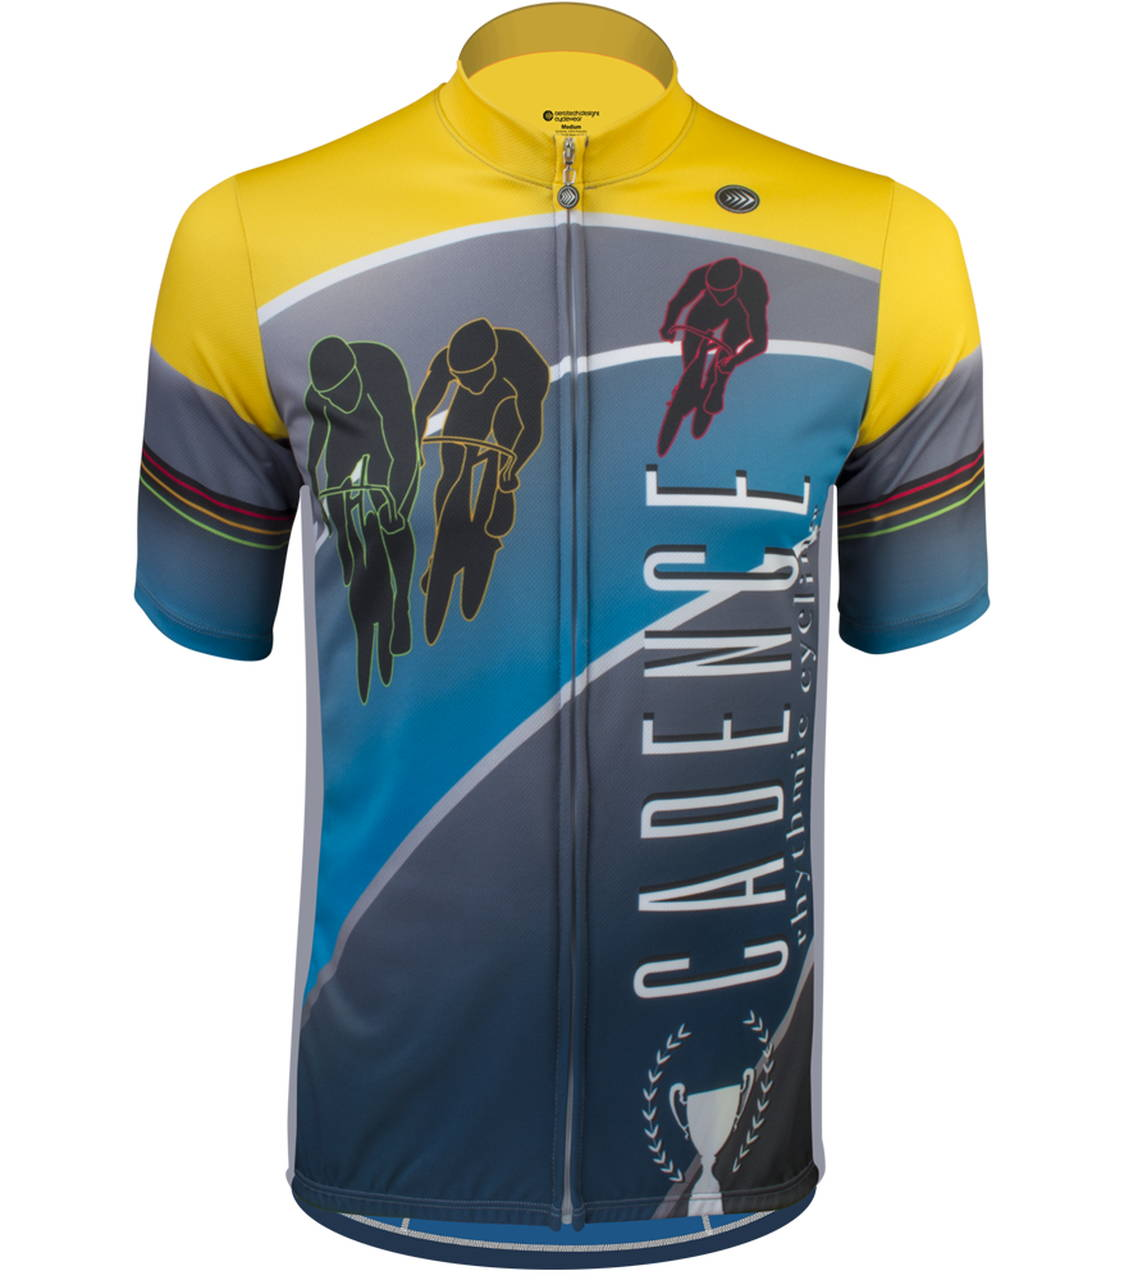 tall man cadence Cycling Jersey